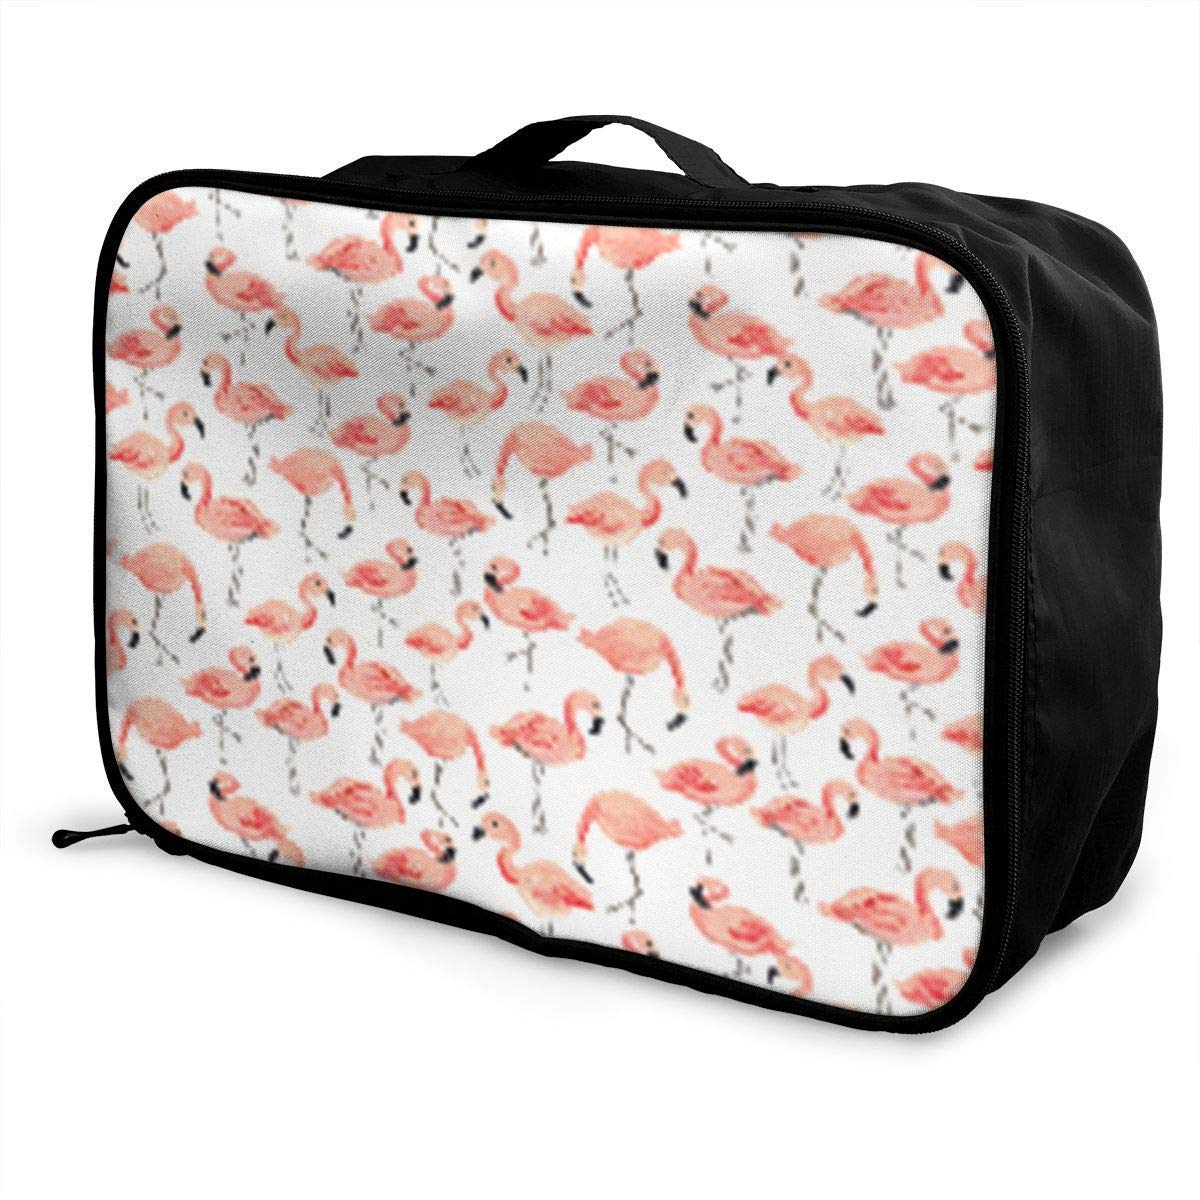 Portable Luggage Duffel Bag Cartoon Flamingo Party Travel Bags Carry-on in Trolley Handle JTRVW Luggage Bags for Travel